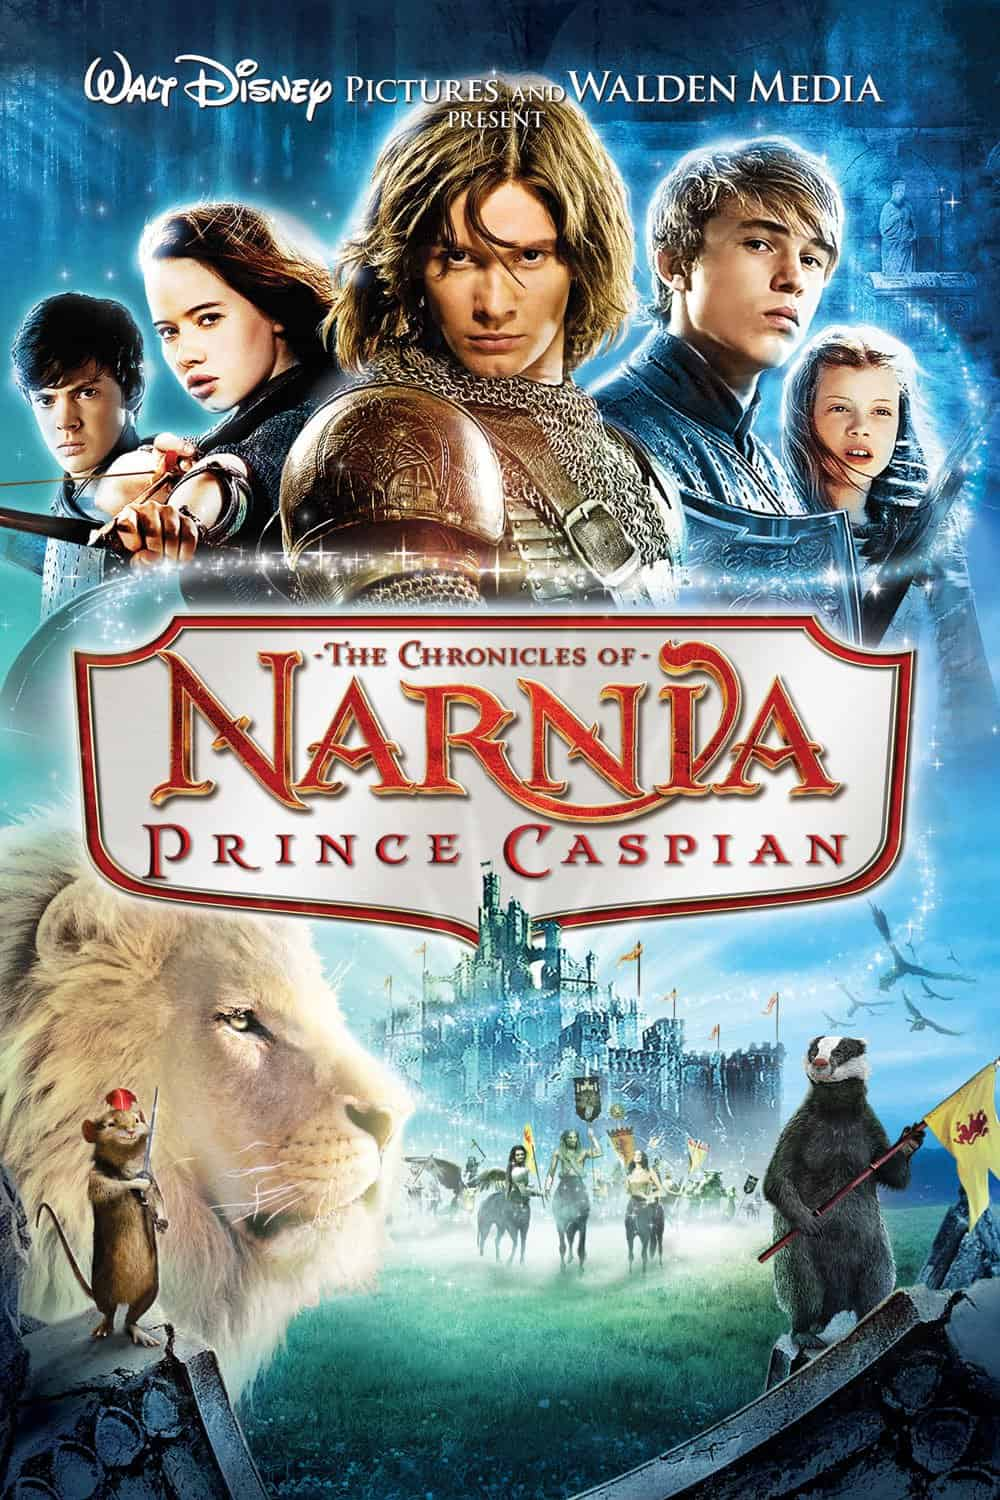 The Chronicles of Narnia: Prince Caspian, 2008